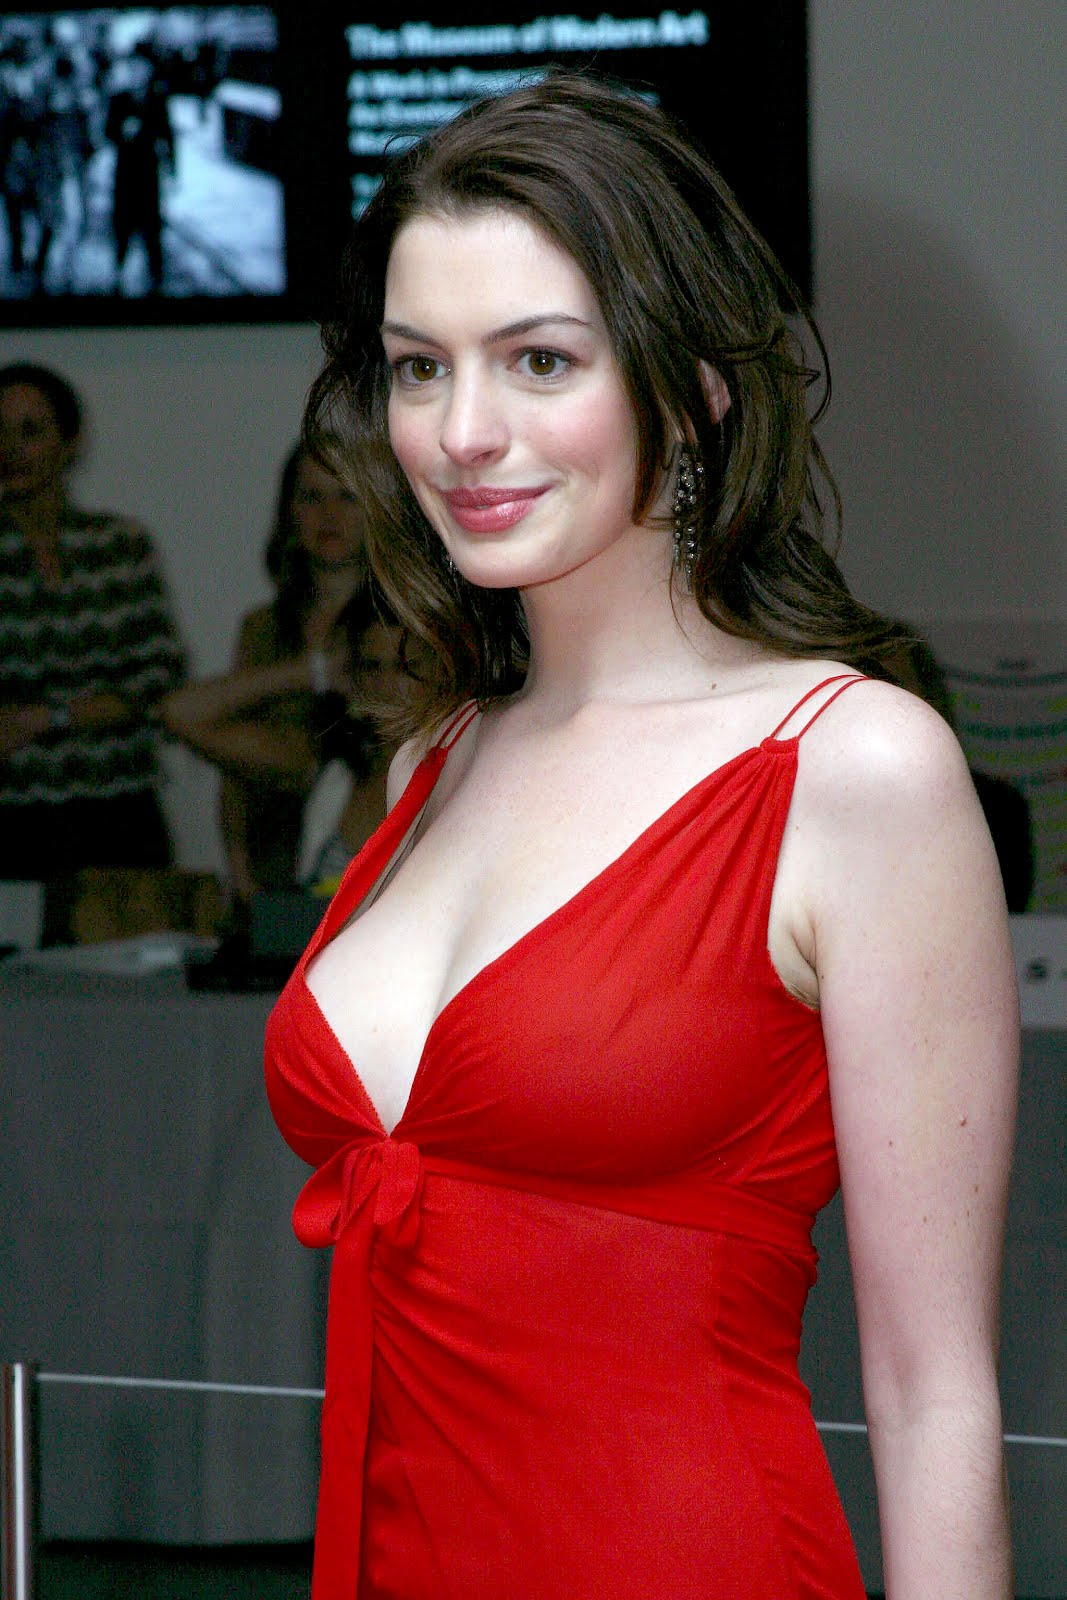 images Anne Hathaway born November 12, 1982 (age 35)